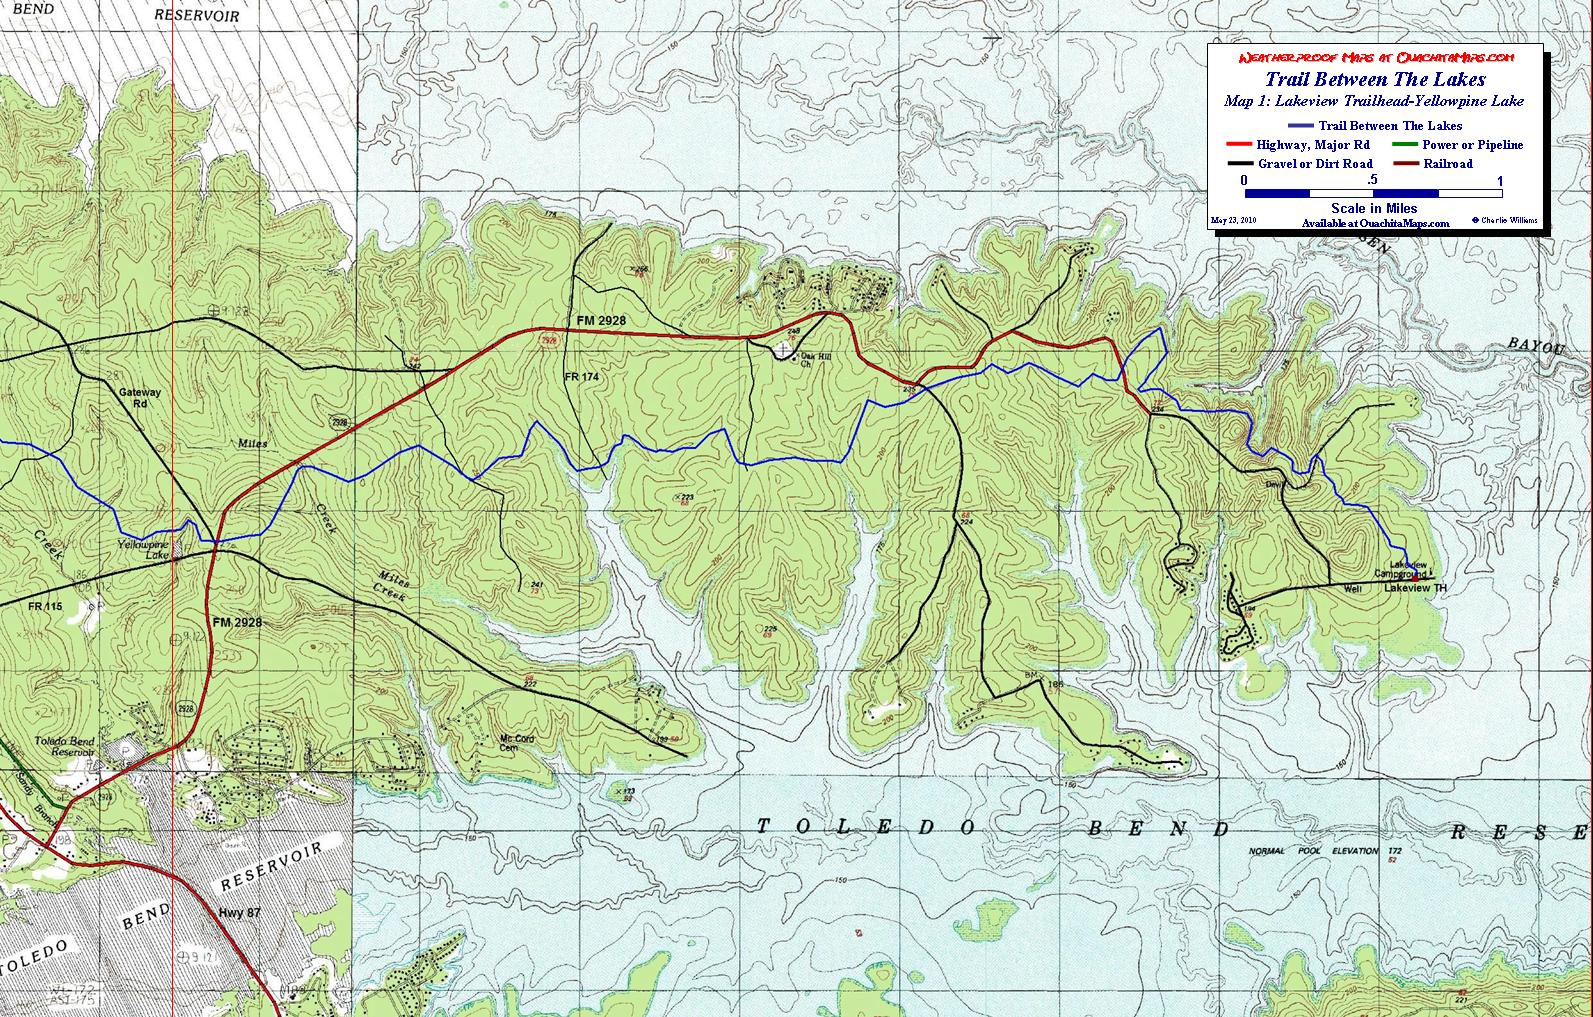 Trail Between The Lakes Sabine National Forest Texas Free - Detailed map of texas